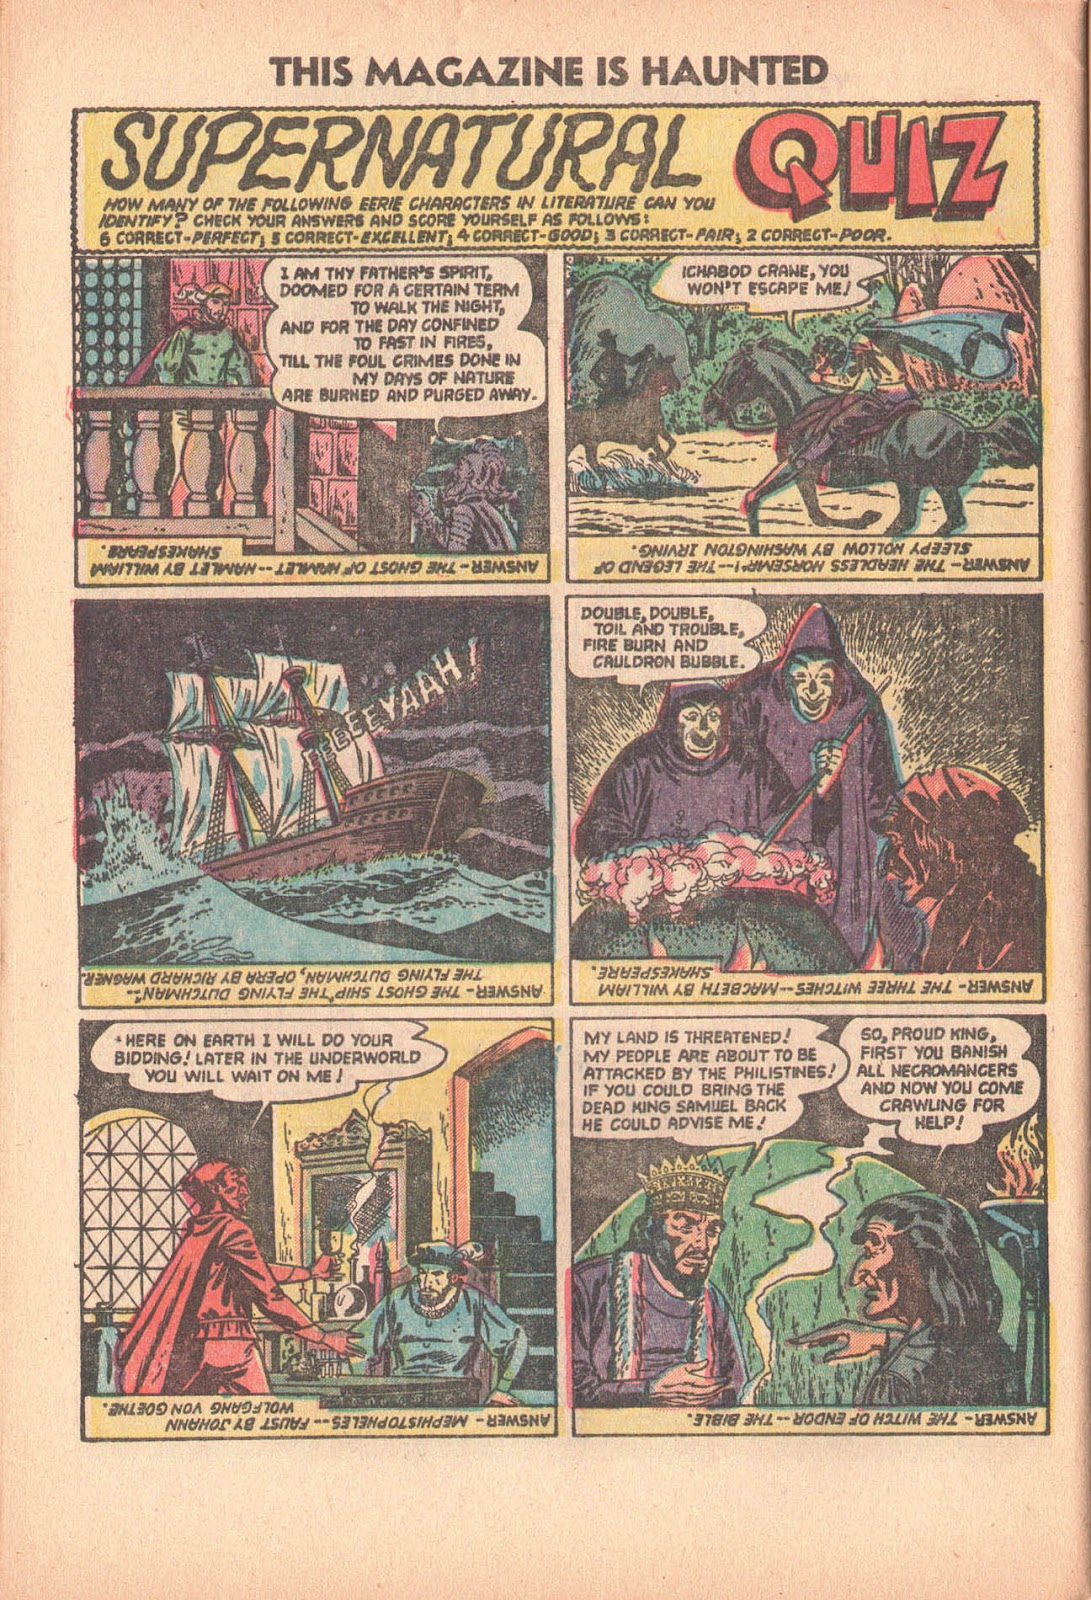 Read online This Magazine Is Haunted comic -  Issue #16 - 32